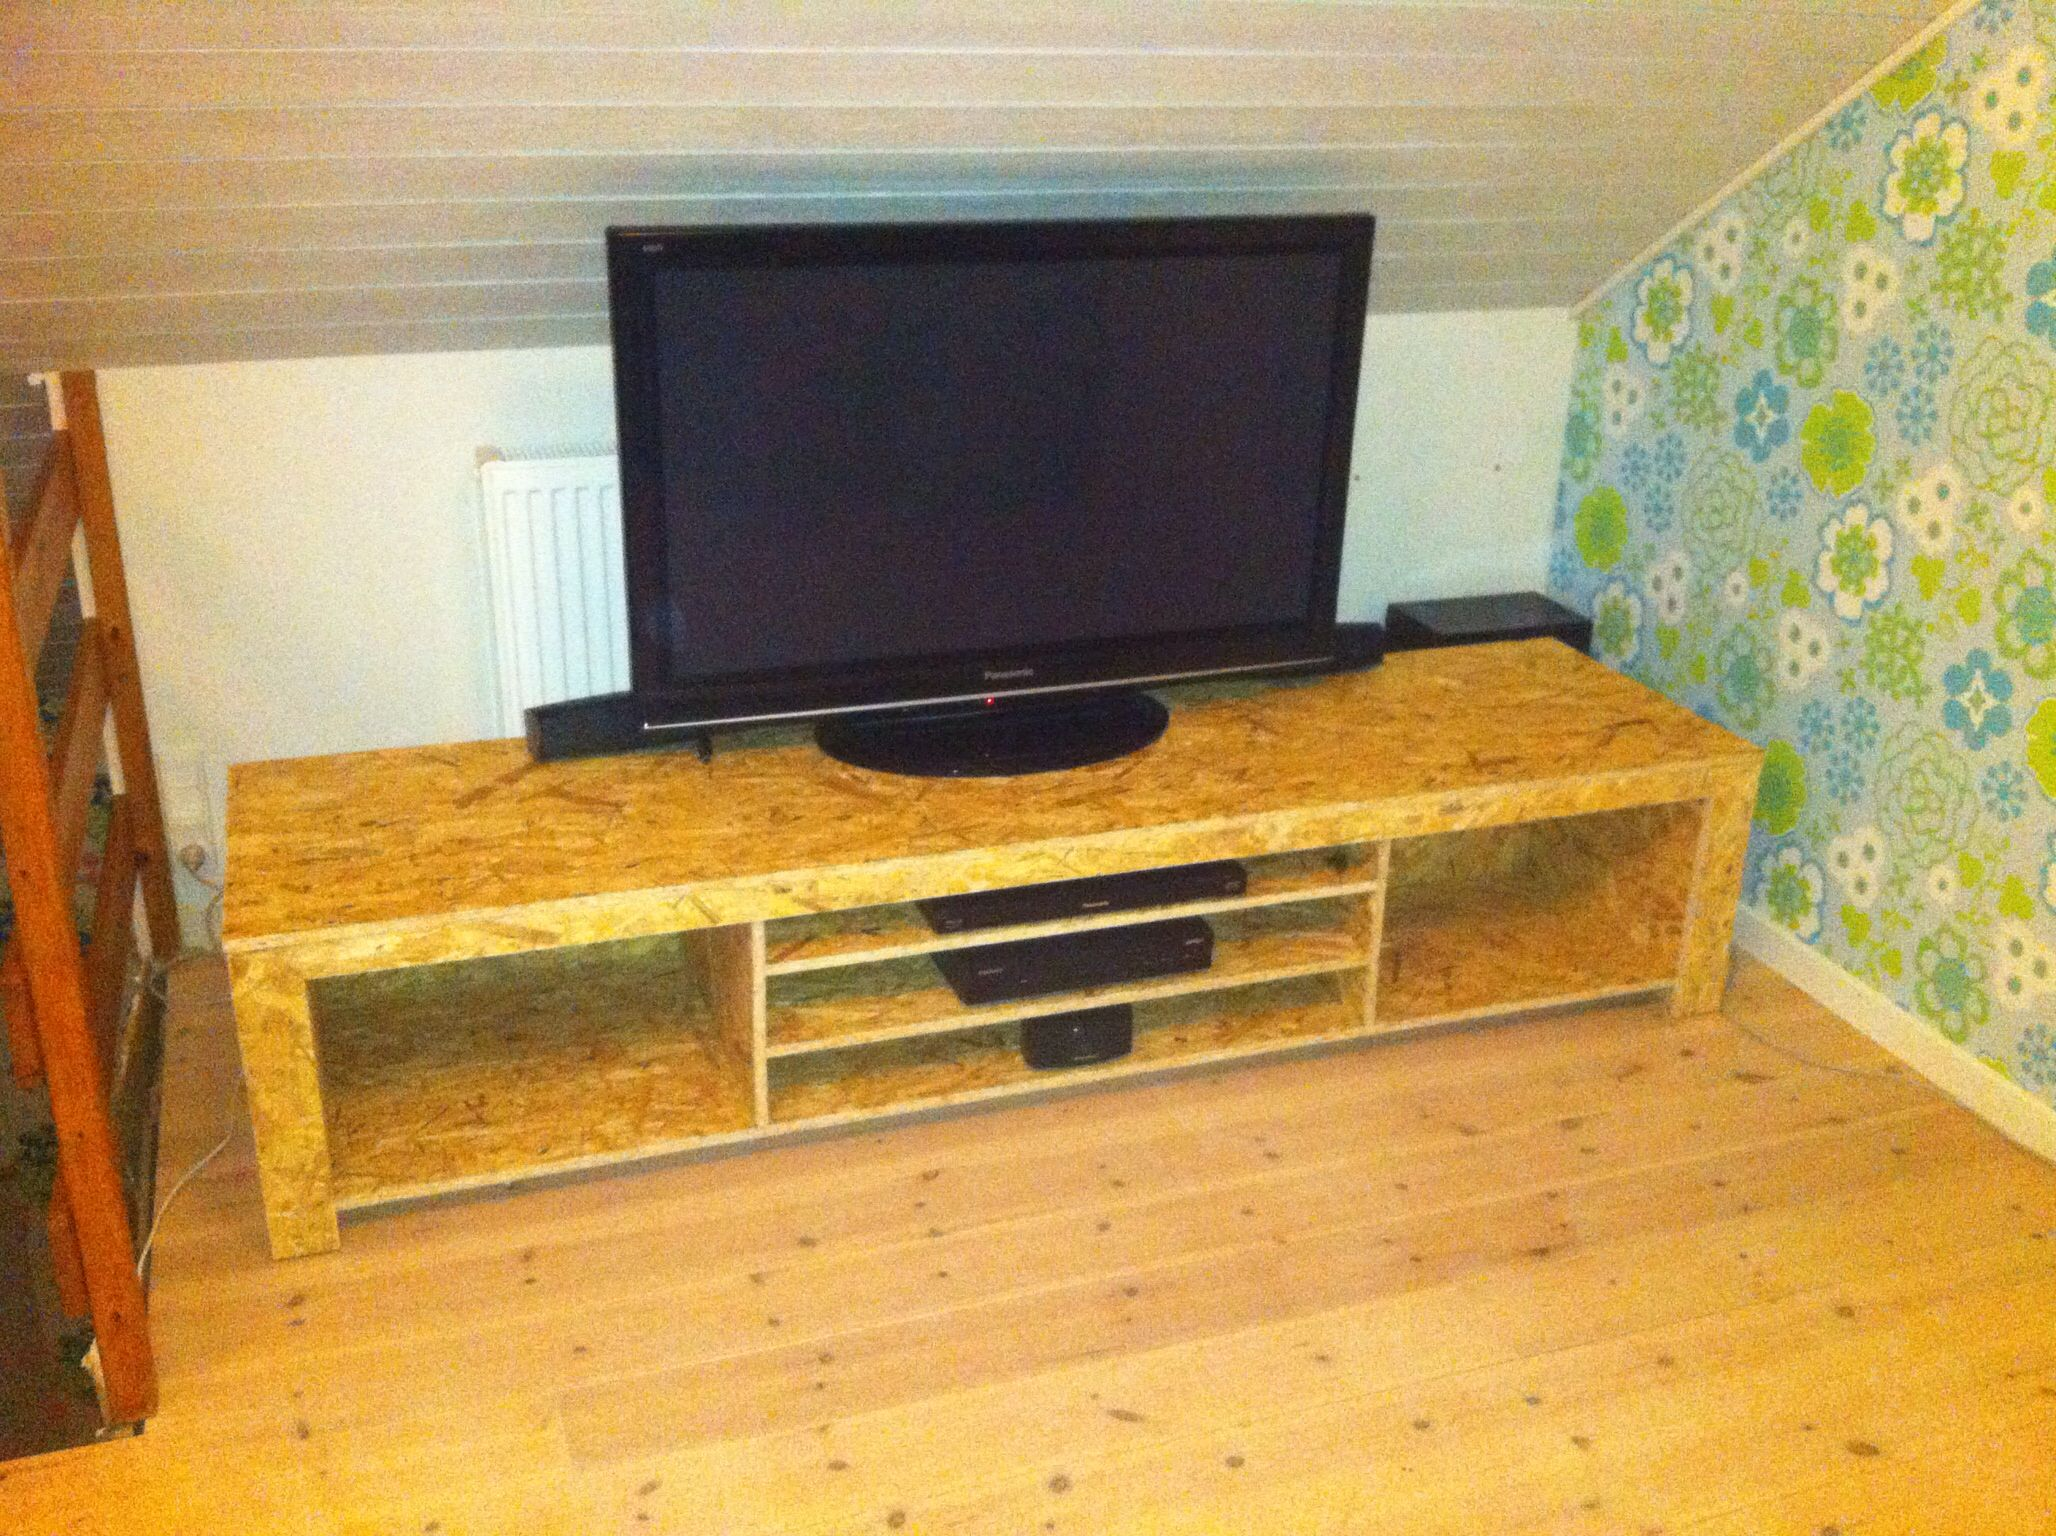 Diy Tv Bench Or Tv Table In Osb Wood Carpenter Ideas Pinterest  # Meuble Tv Gamer